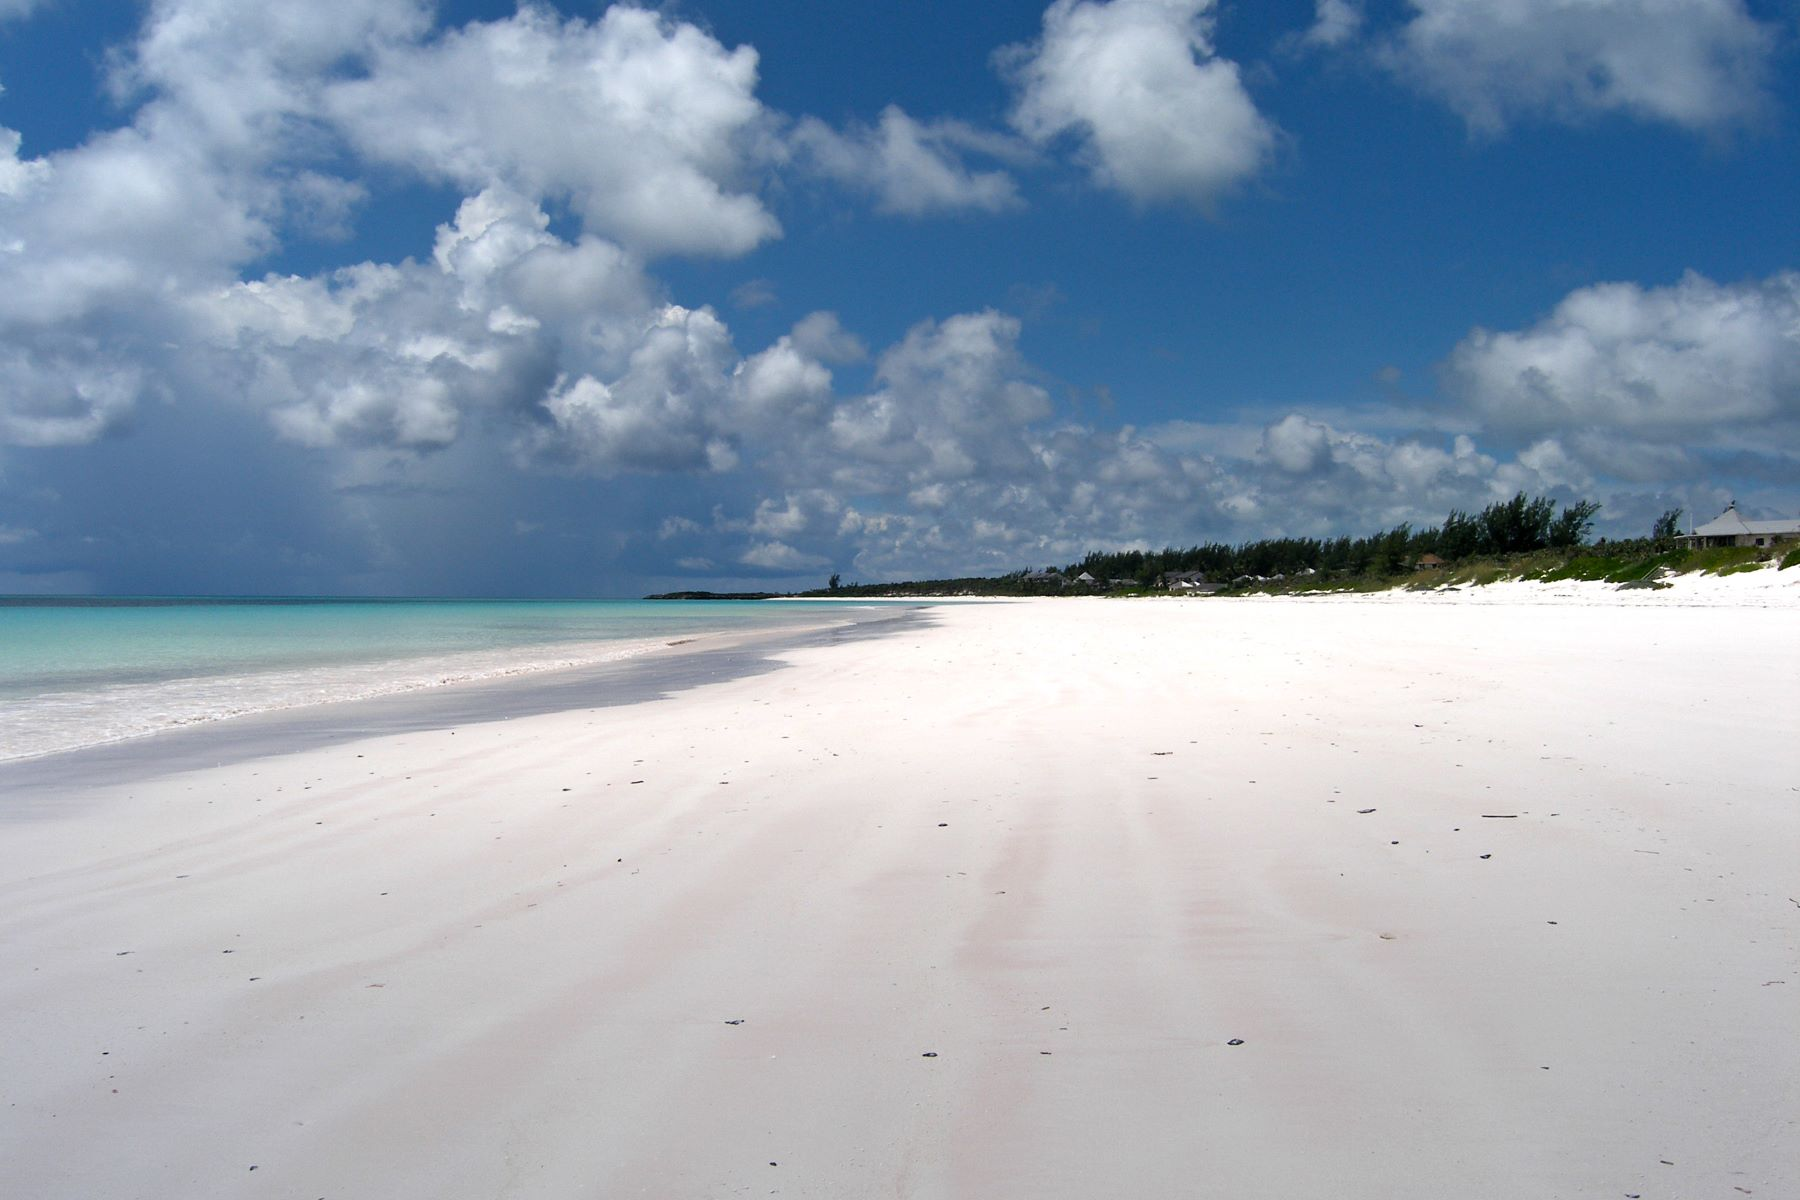 Land for Sale at Prime Windermere Beachfront Property Windermere Island, Eleuthera Bahamas